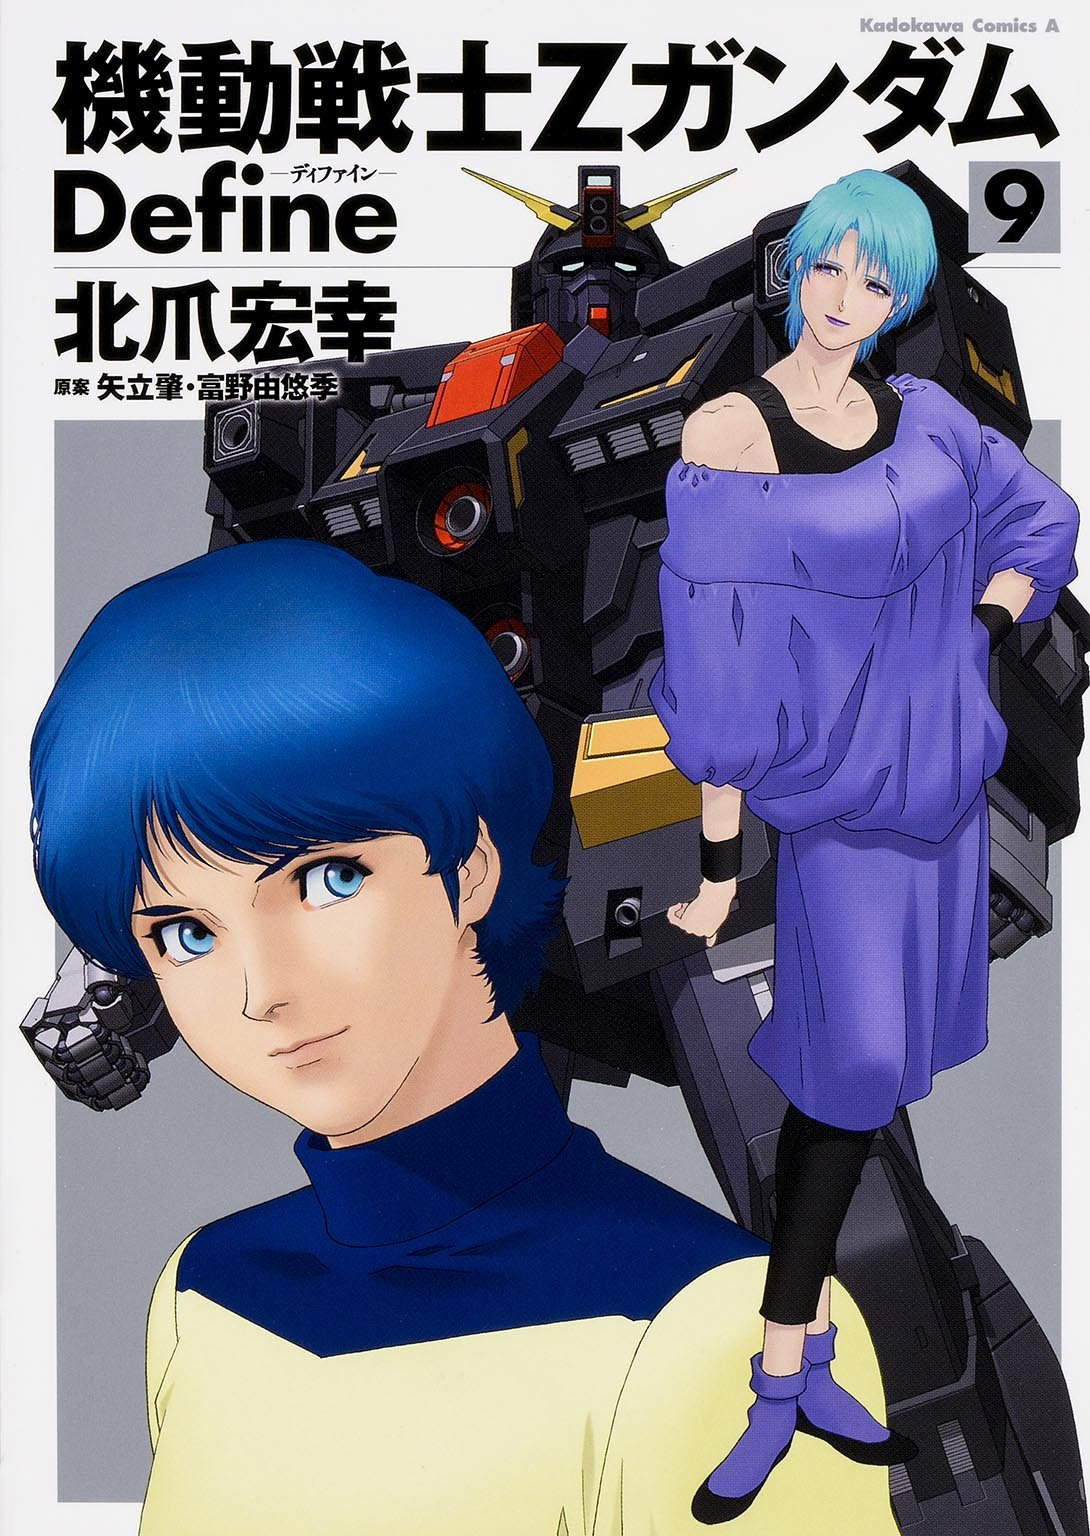 File:Mobile Suit Gundam Z Define Vol. 9.jpg